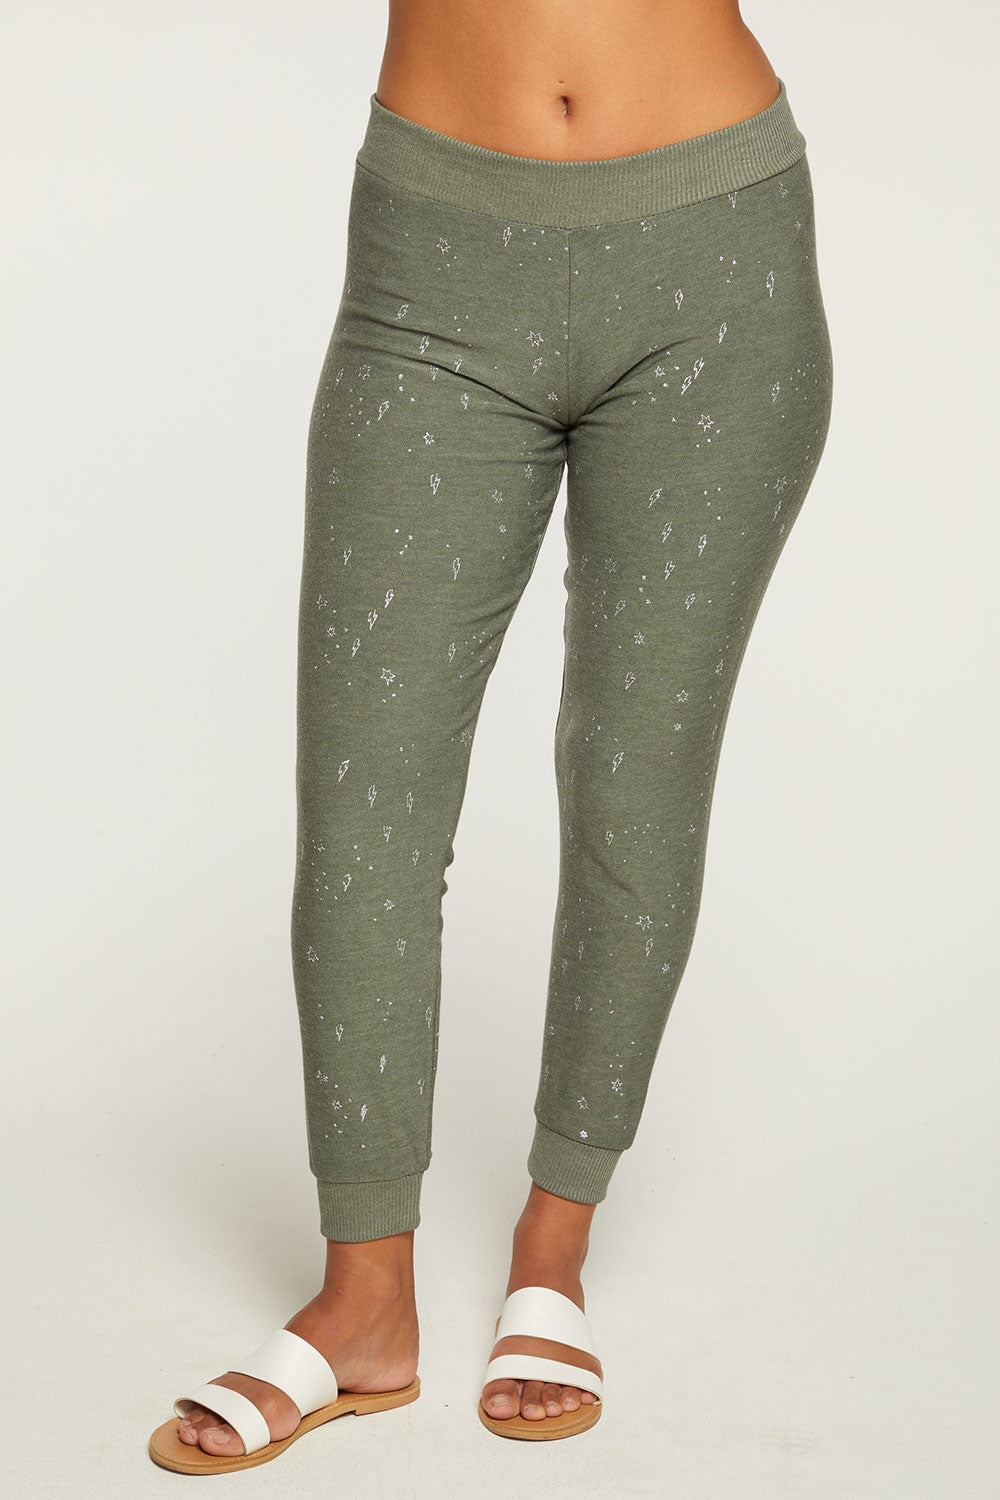 Stars & Bolts Pant WOMENS chaserbrand4.myshopify.com